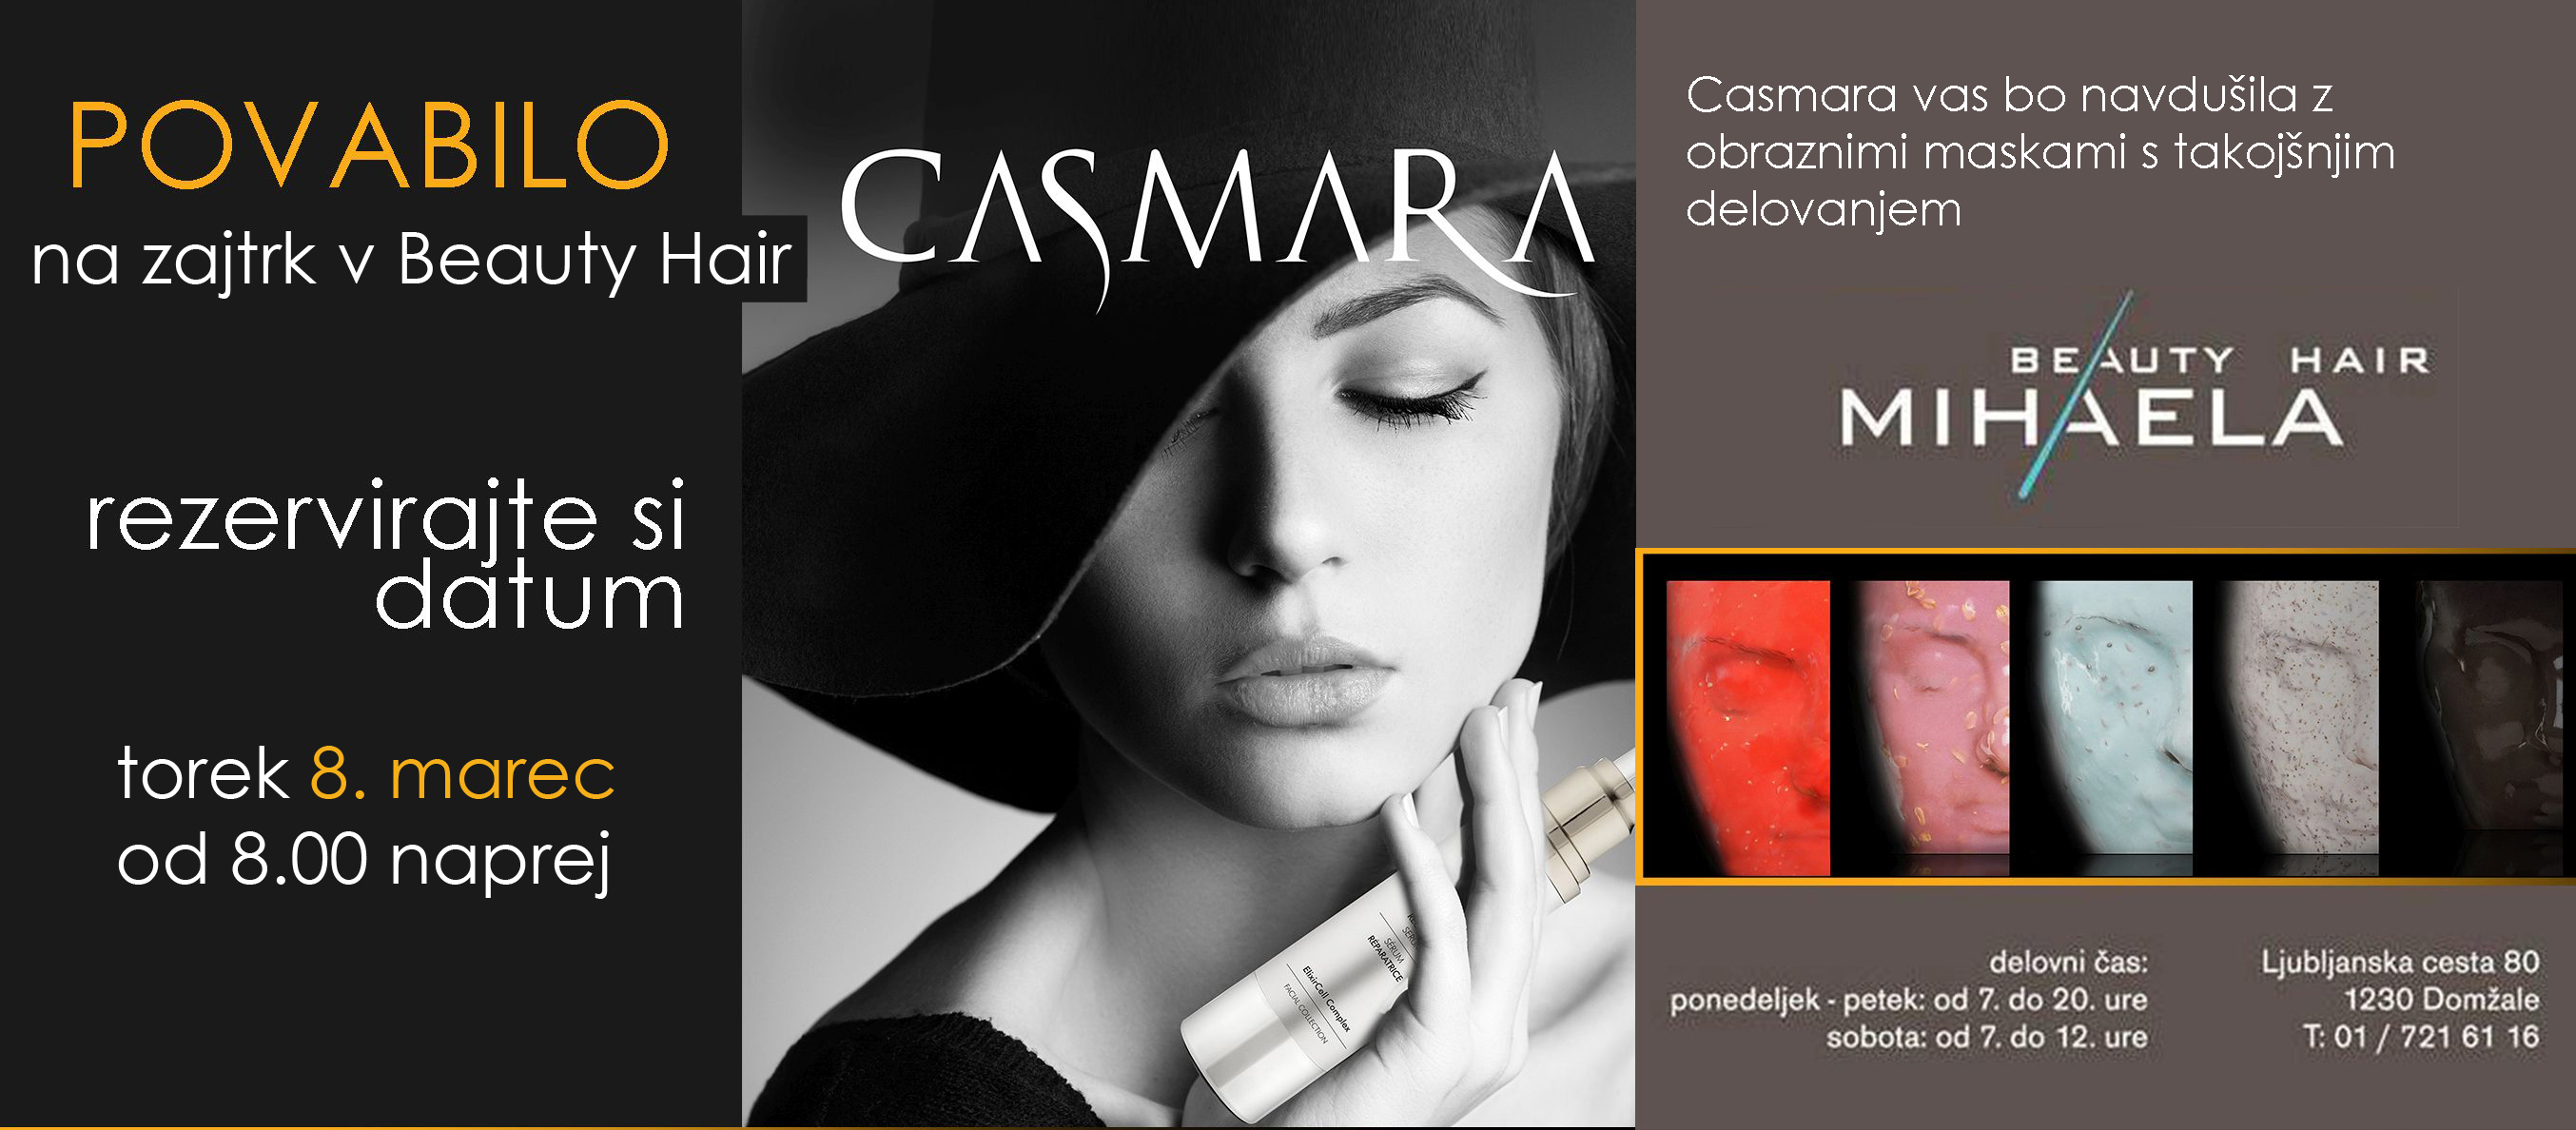 Zajtrk s Casmaro v Beauty Hair Mihaela